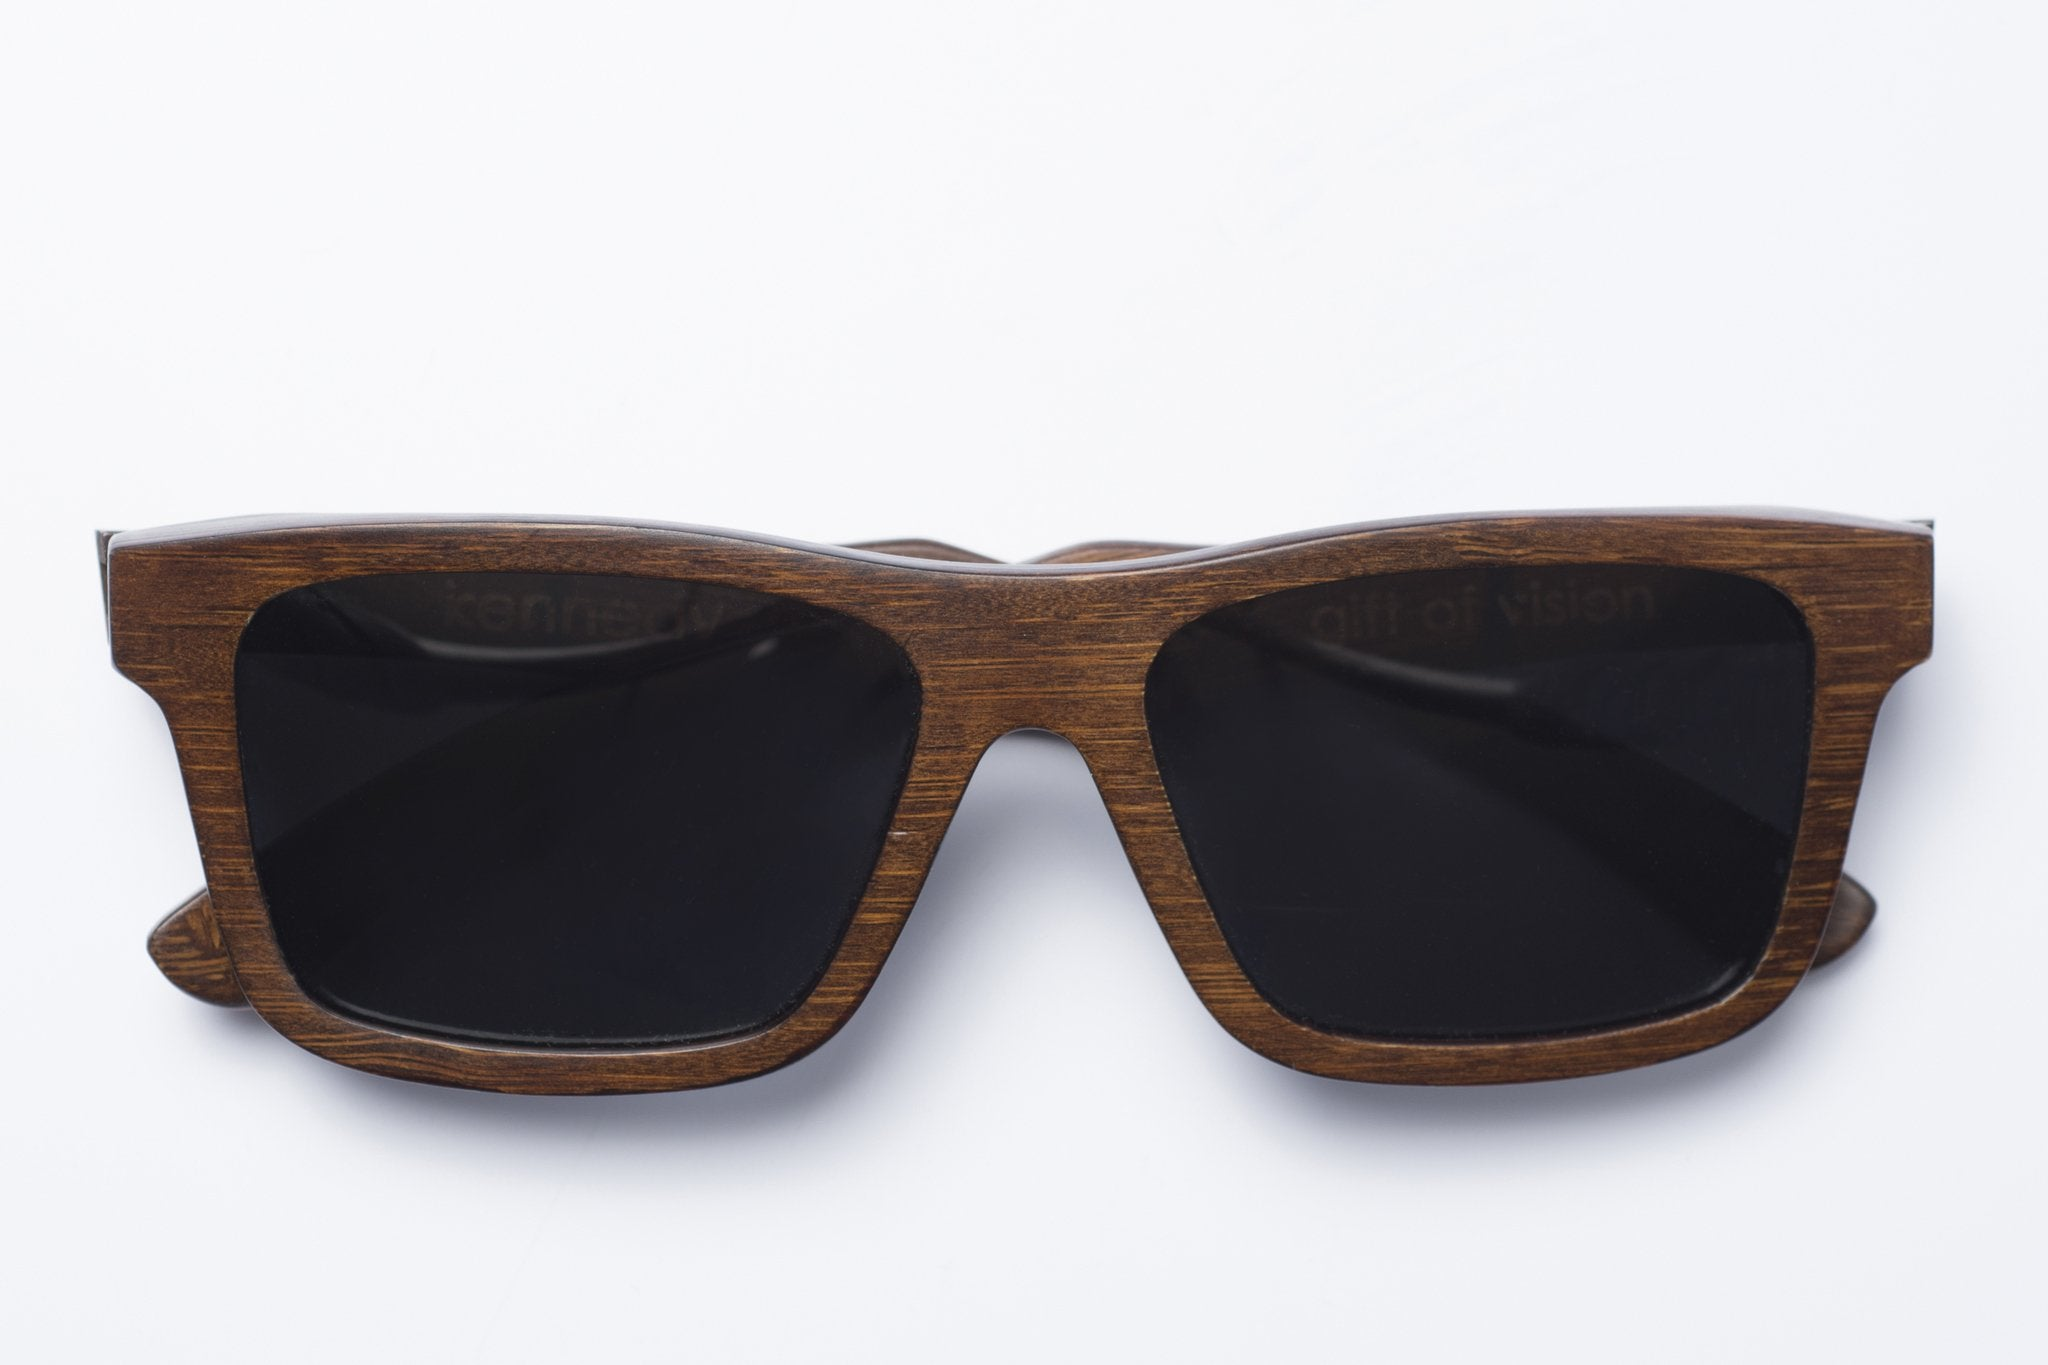 Kennedy Bamboo Sunglasses Polarized Black/Brown/Natural - Monsoon Ridge